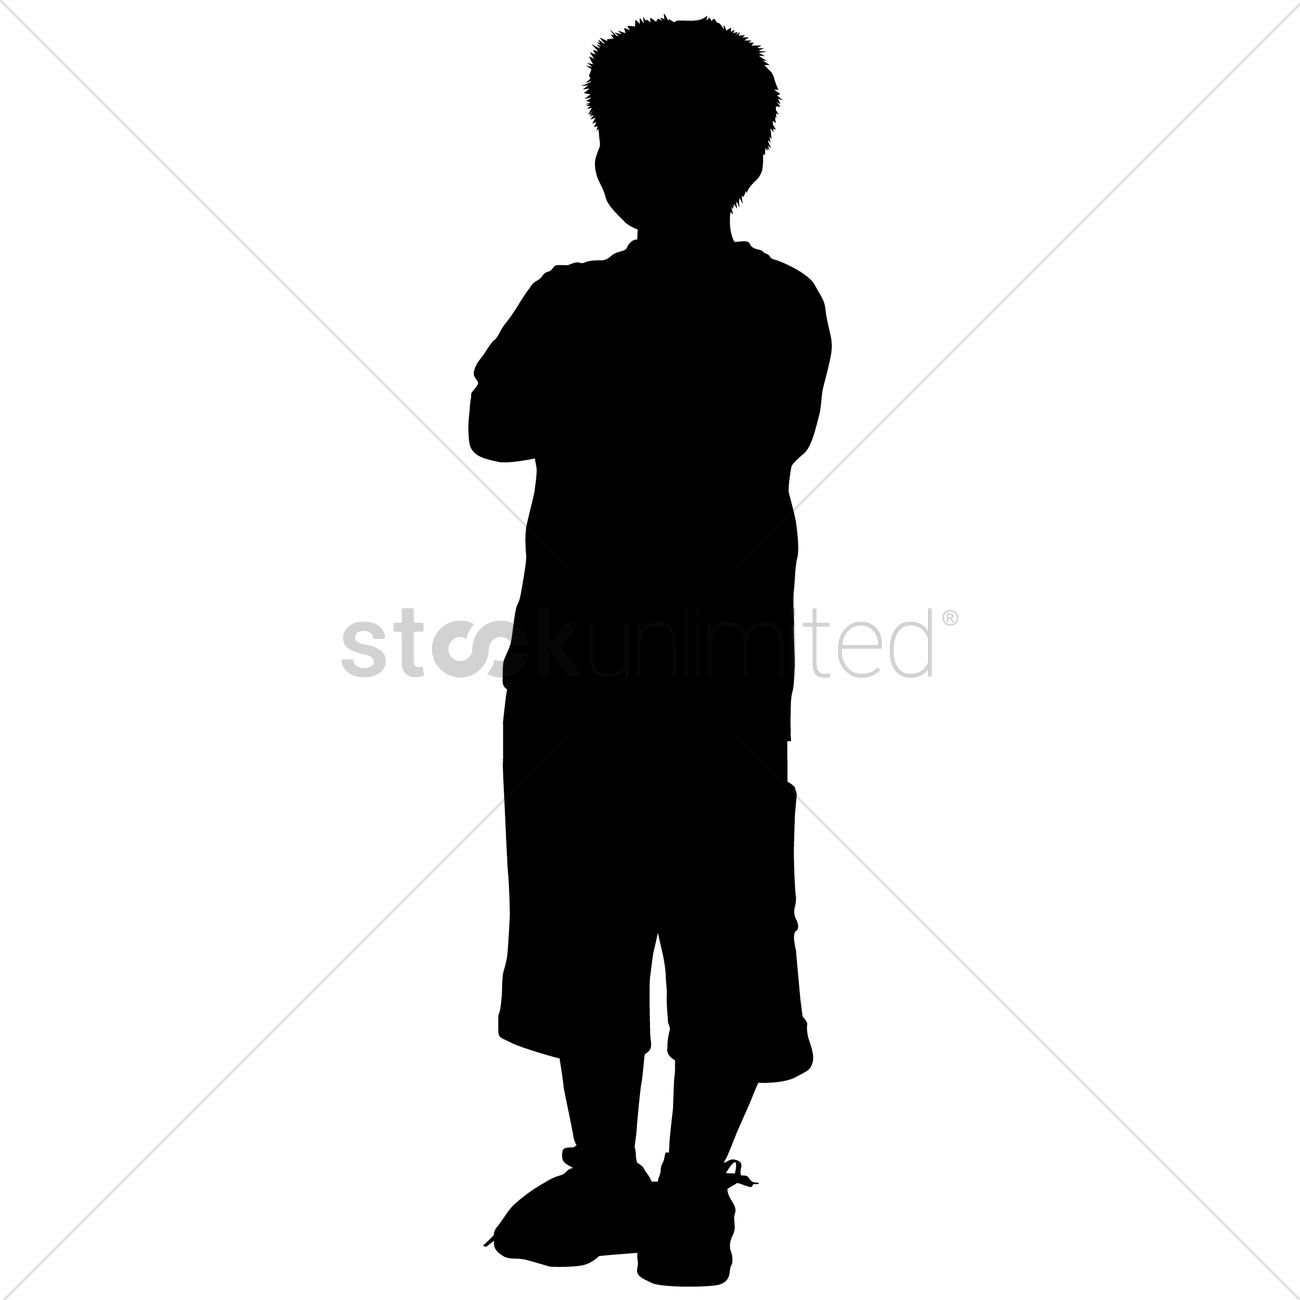 Silhouette of a boy standing Vector - 36.8KB